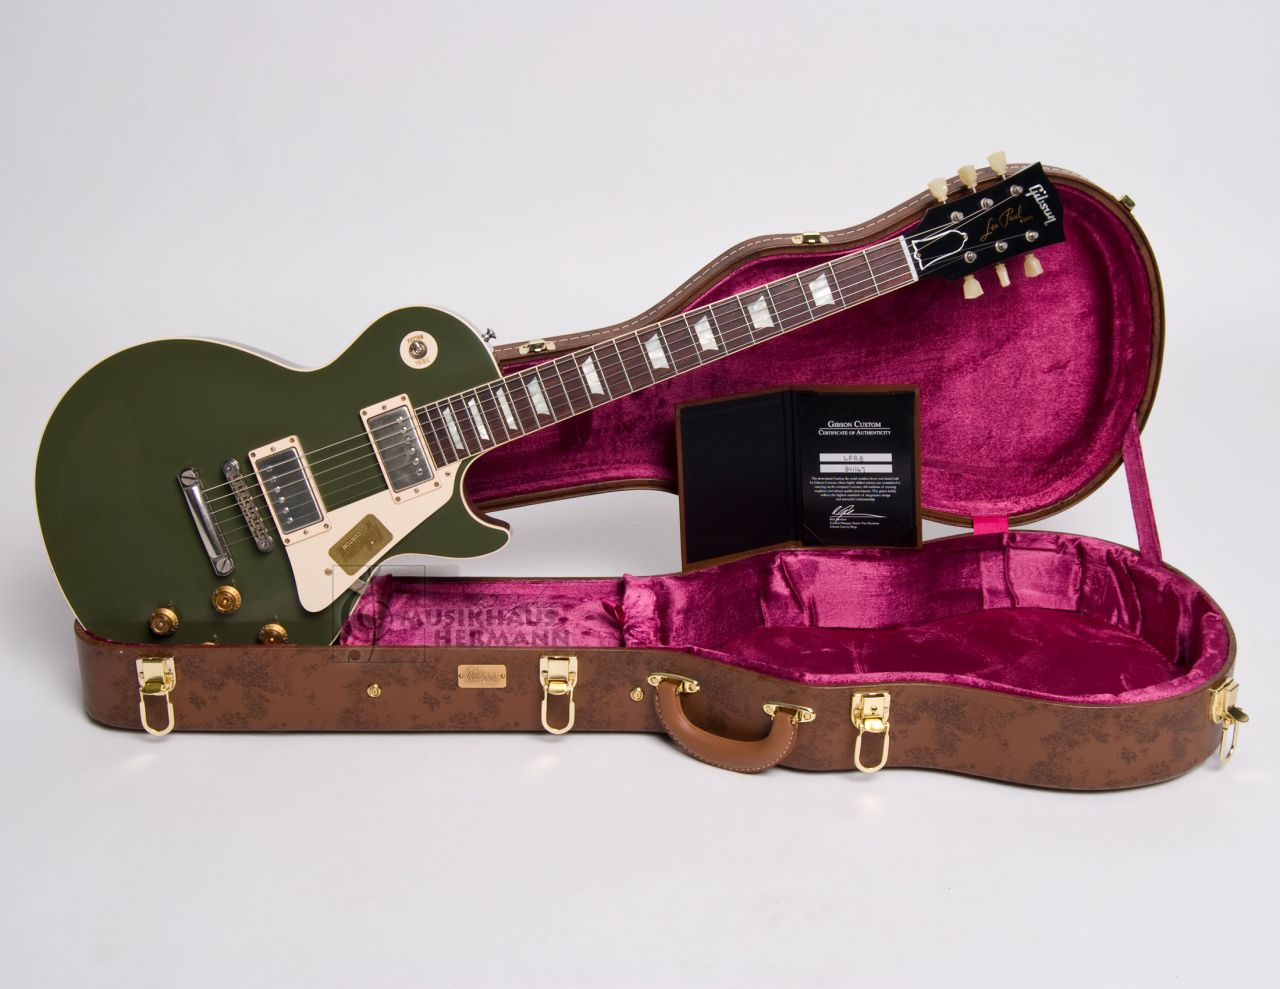 Gibson Les Paul 1958 Reissue VOS 2014 - Olive Grape Green - handselected BCLPR8MHVOOLNH1